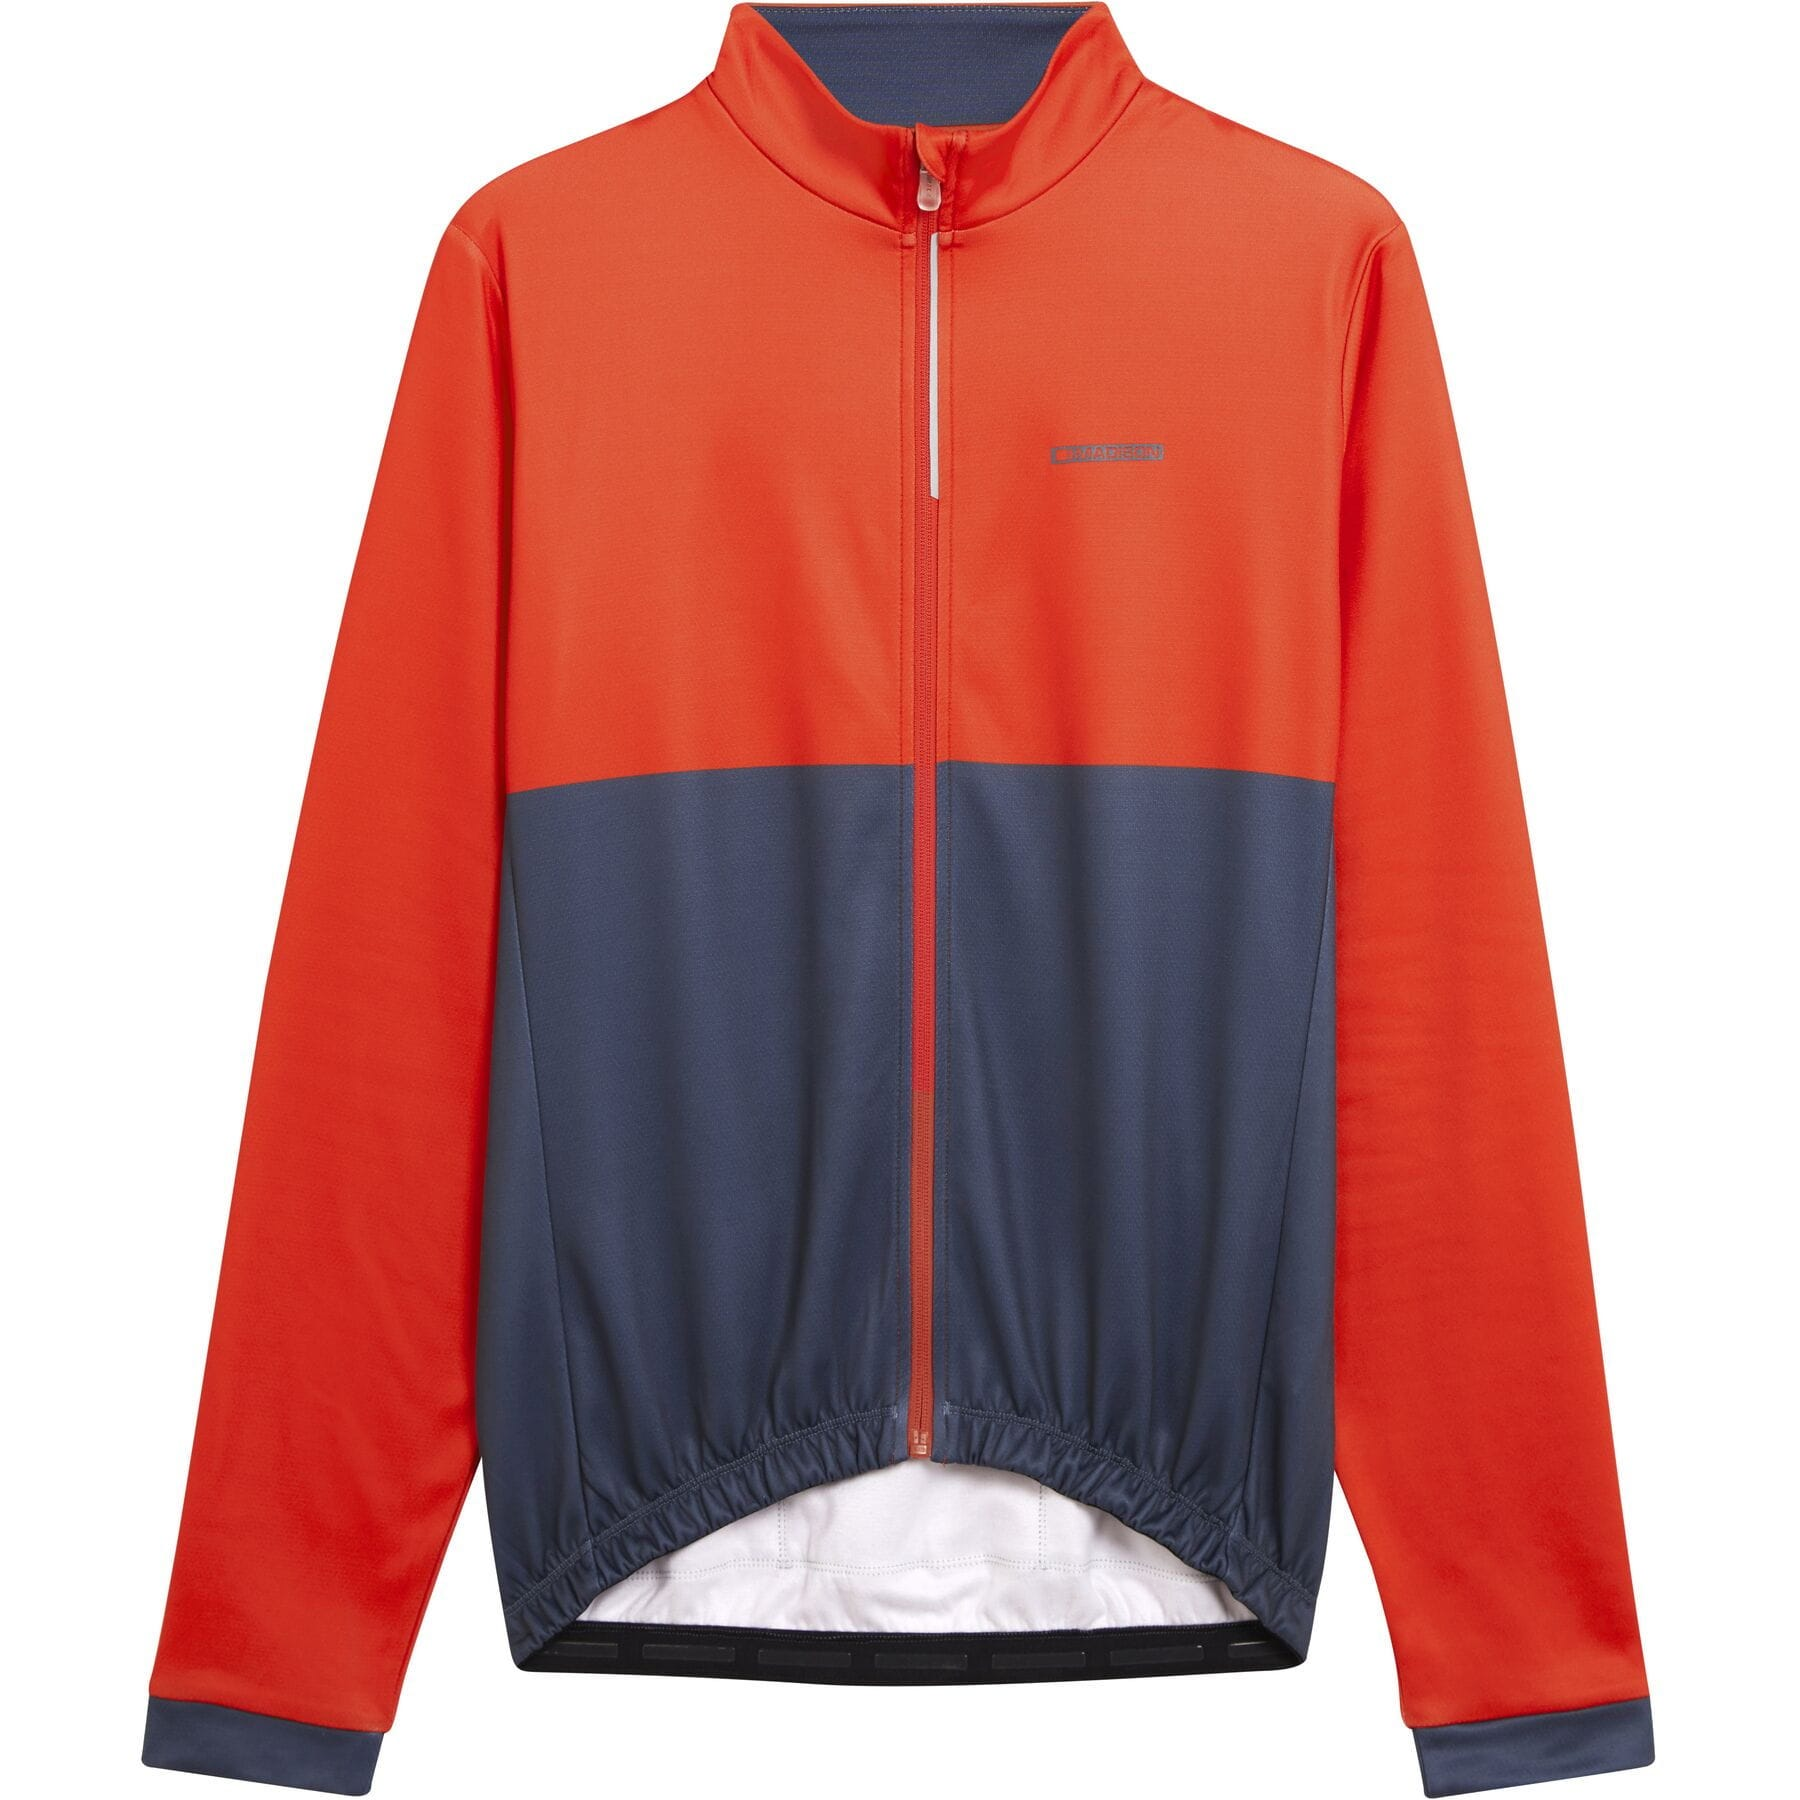 Madison Sportive men's long sleeve thermal jersey